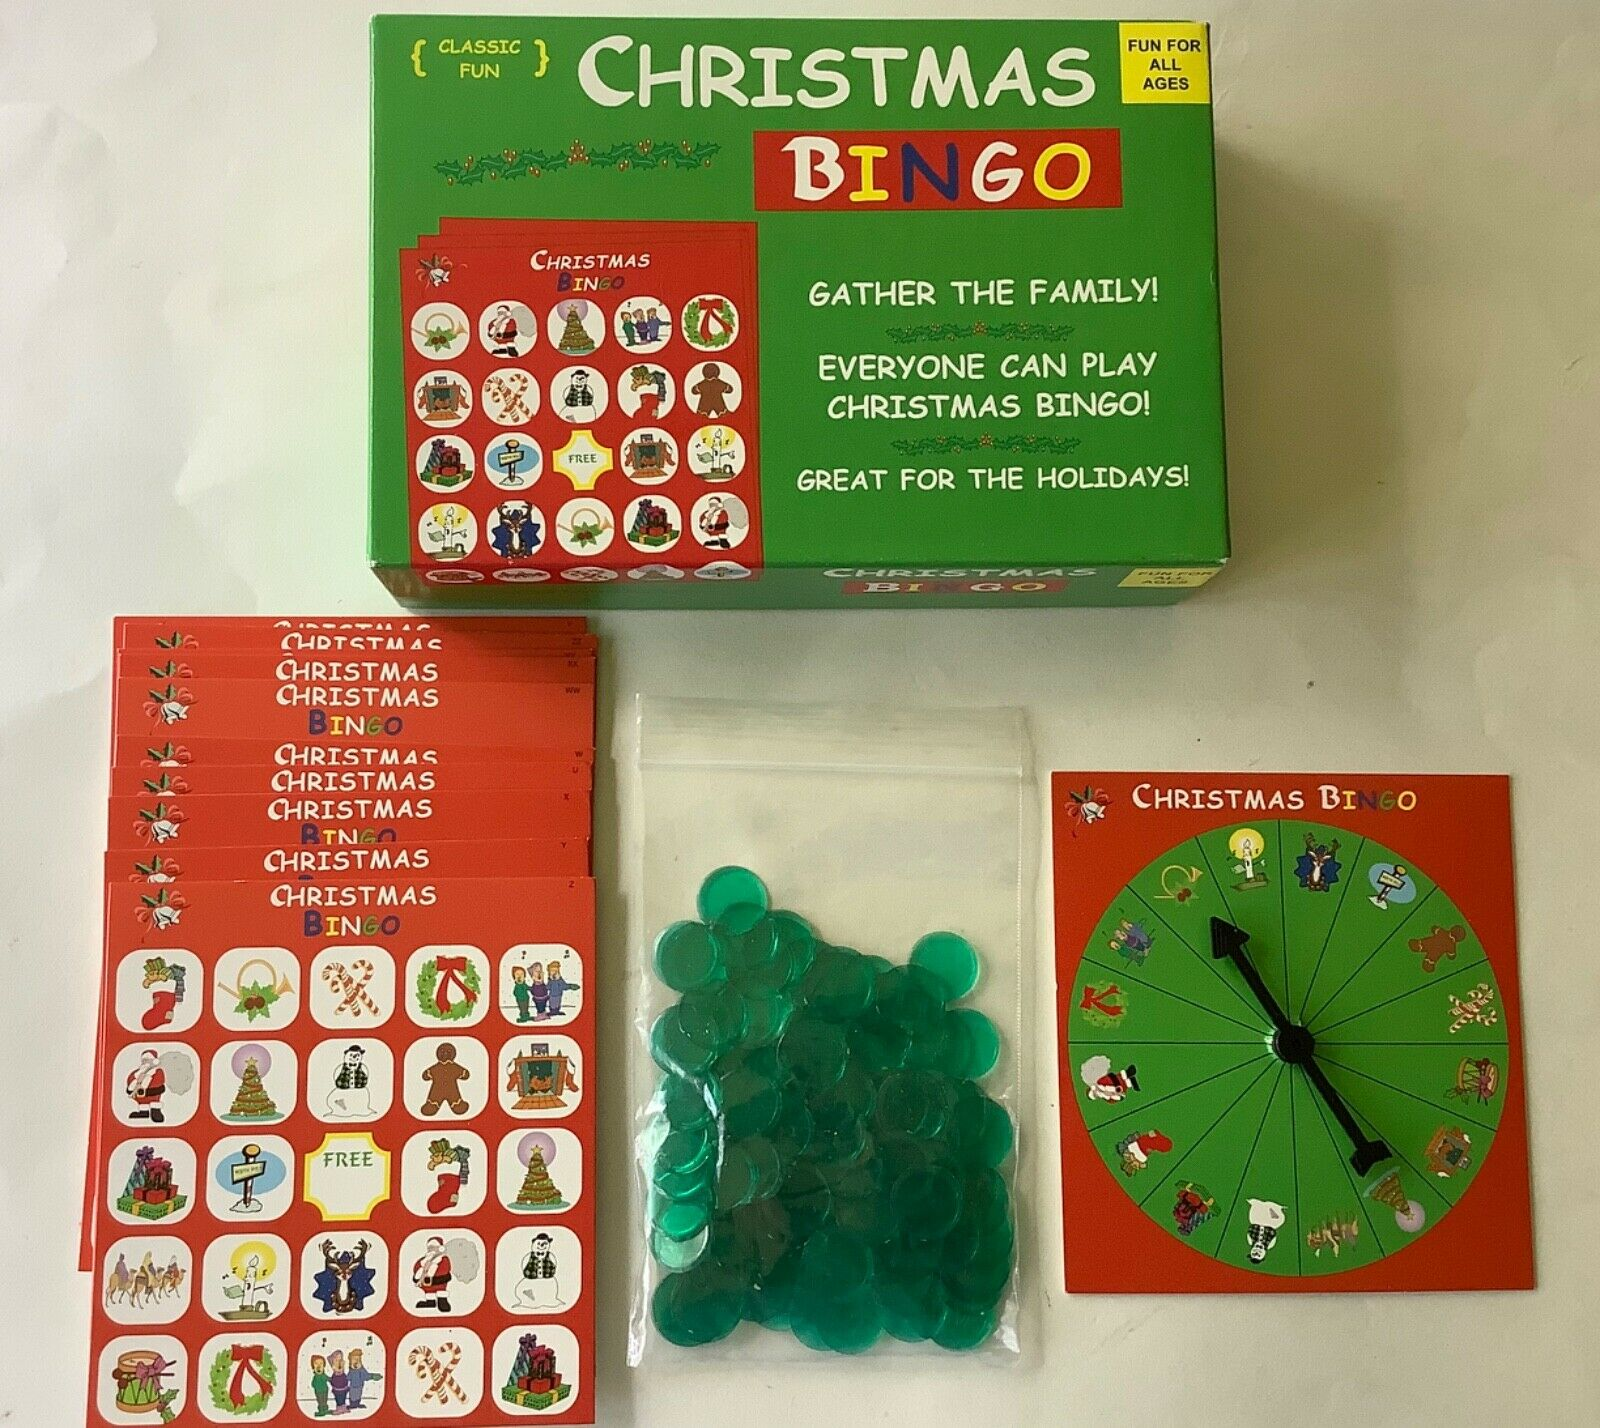 Christmas Bingo by Anton Holiday Game For The Entire Family